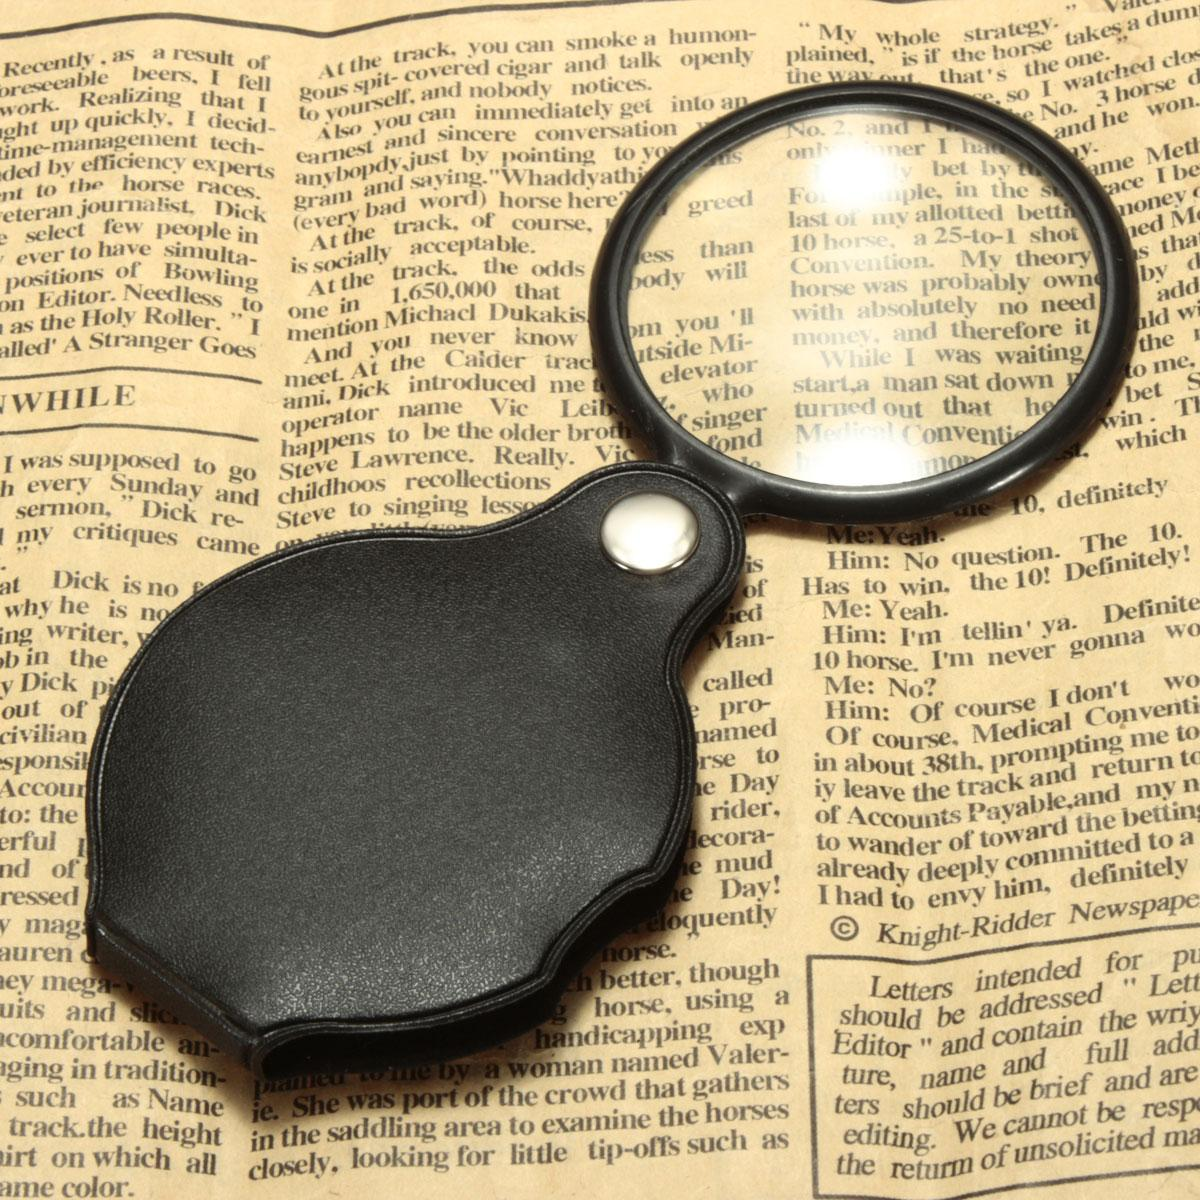 10X Hand-Hold Magnifying Magnifier Glass Foldable Portable Jewelry Loop Loupe